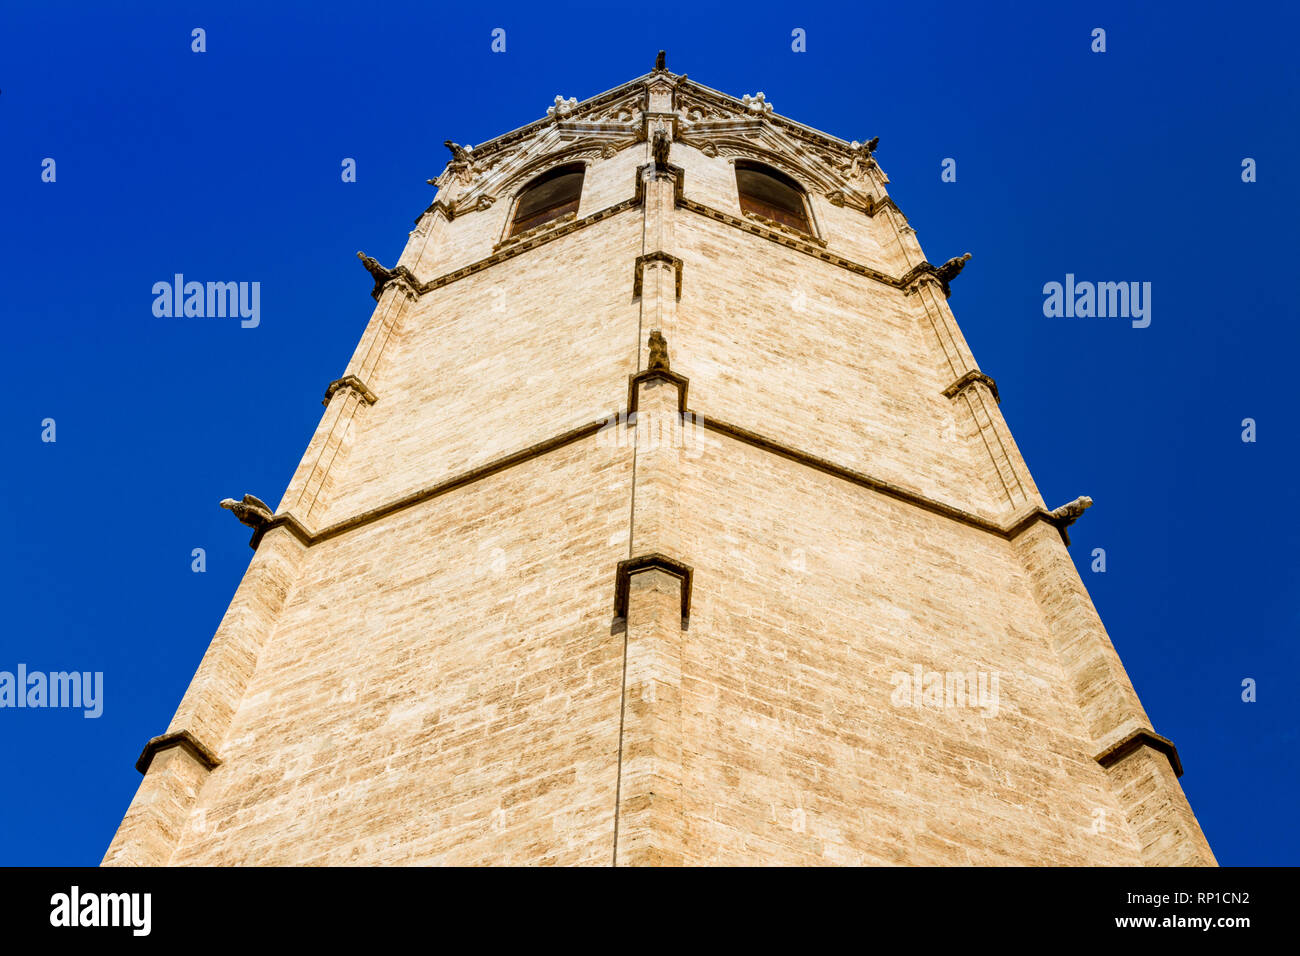 The belfry, known as Micalet, of the Saint Mary's Cathedral or Valencia Cathedral in Valencia, Spain Stock Photo